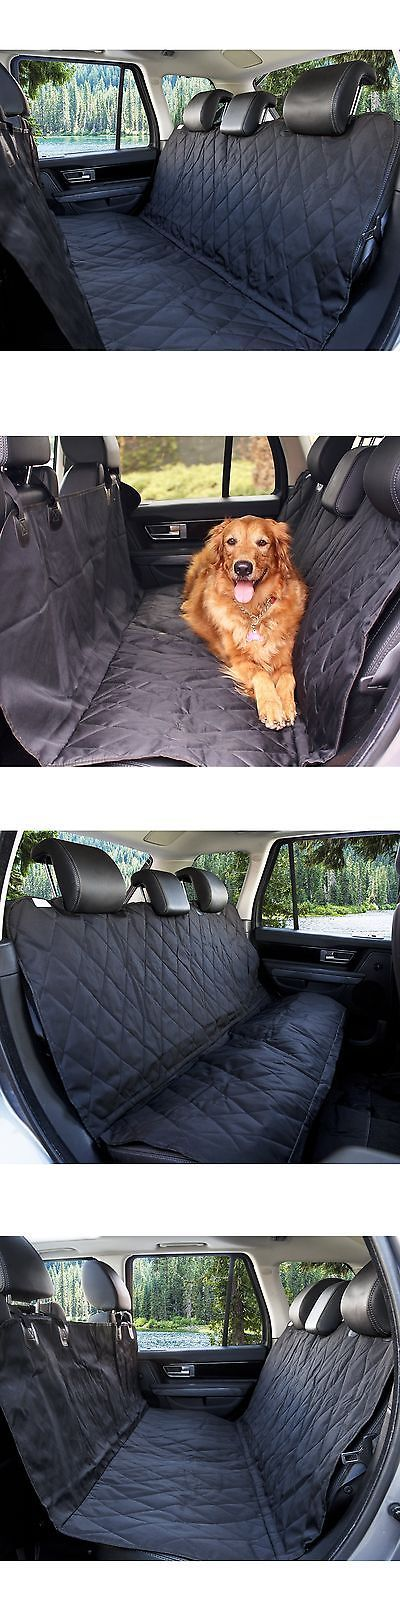 Luxury Cars: Barksbar Luxury Pet Car Seat Cover With Seat Anchors For Cars Trucks And Suv ... -> BUY IT NOW ONLY: $41.65 on eBay!